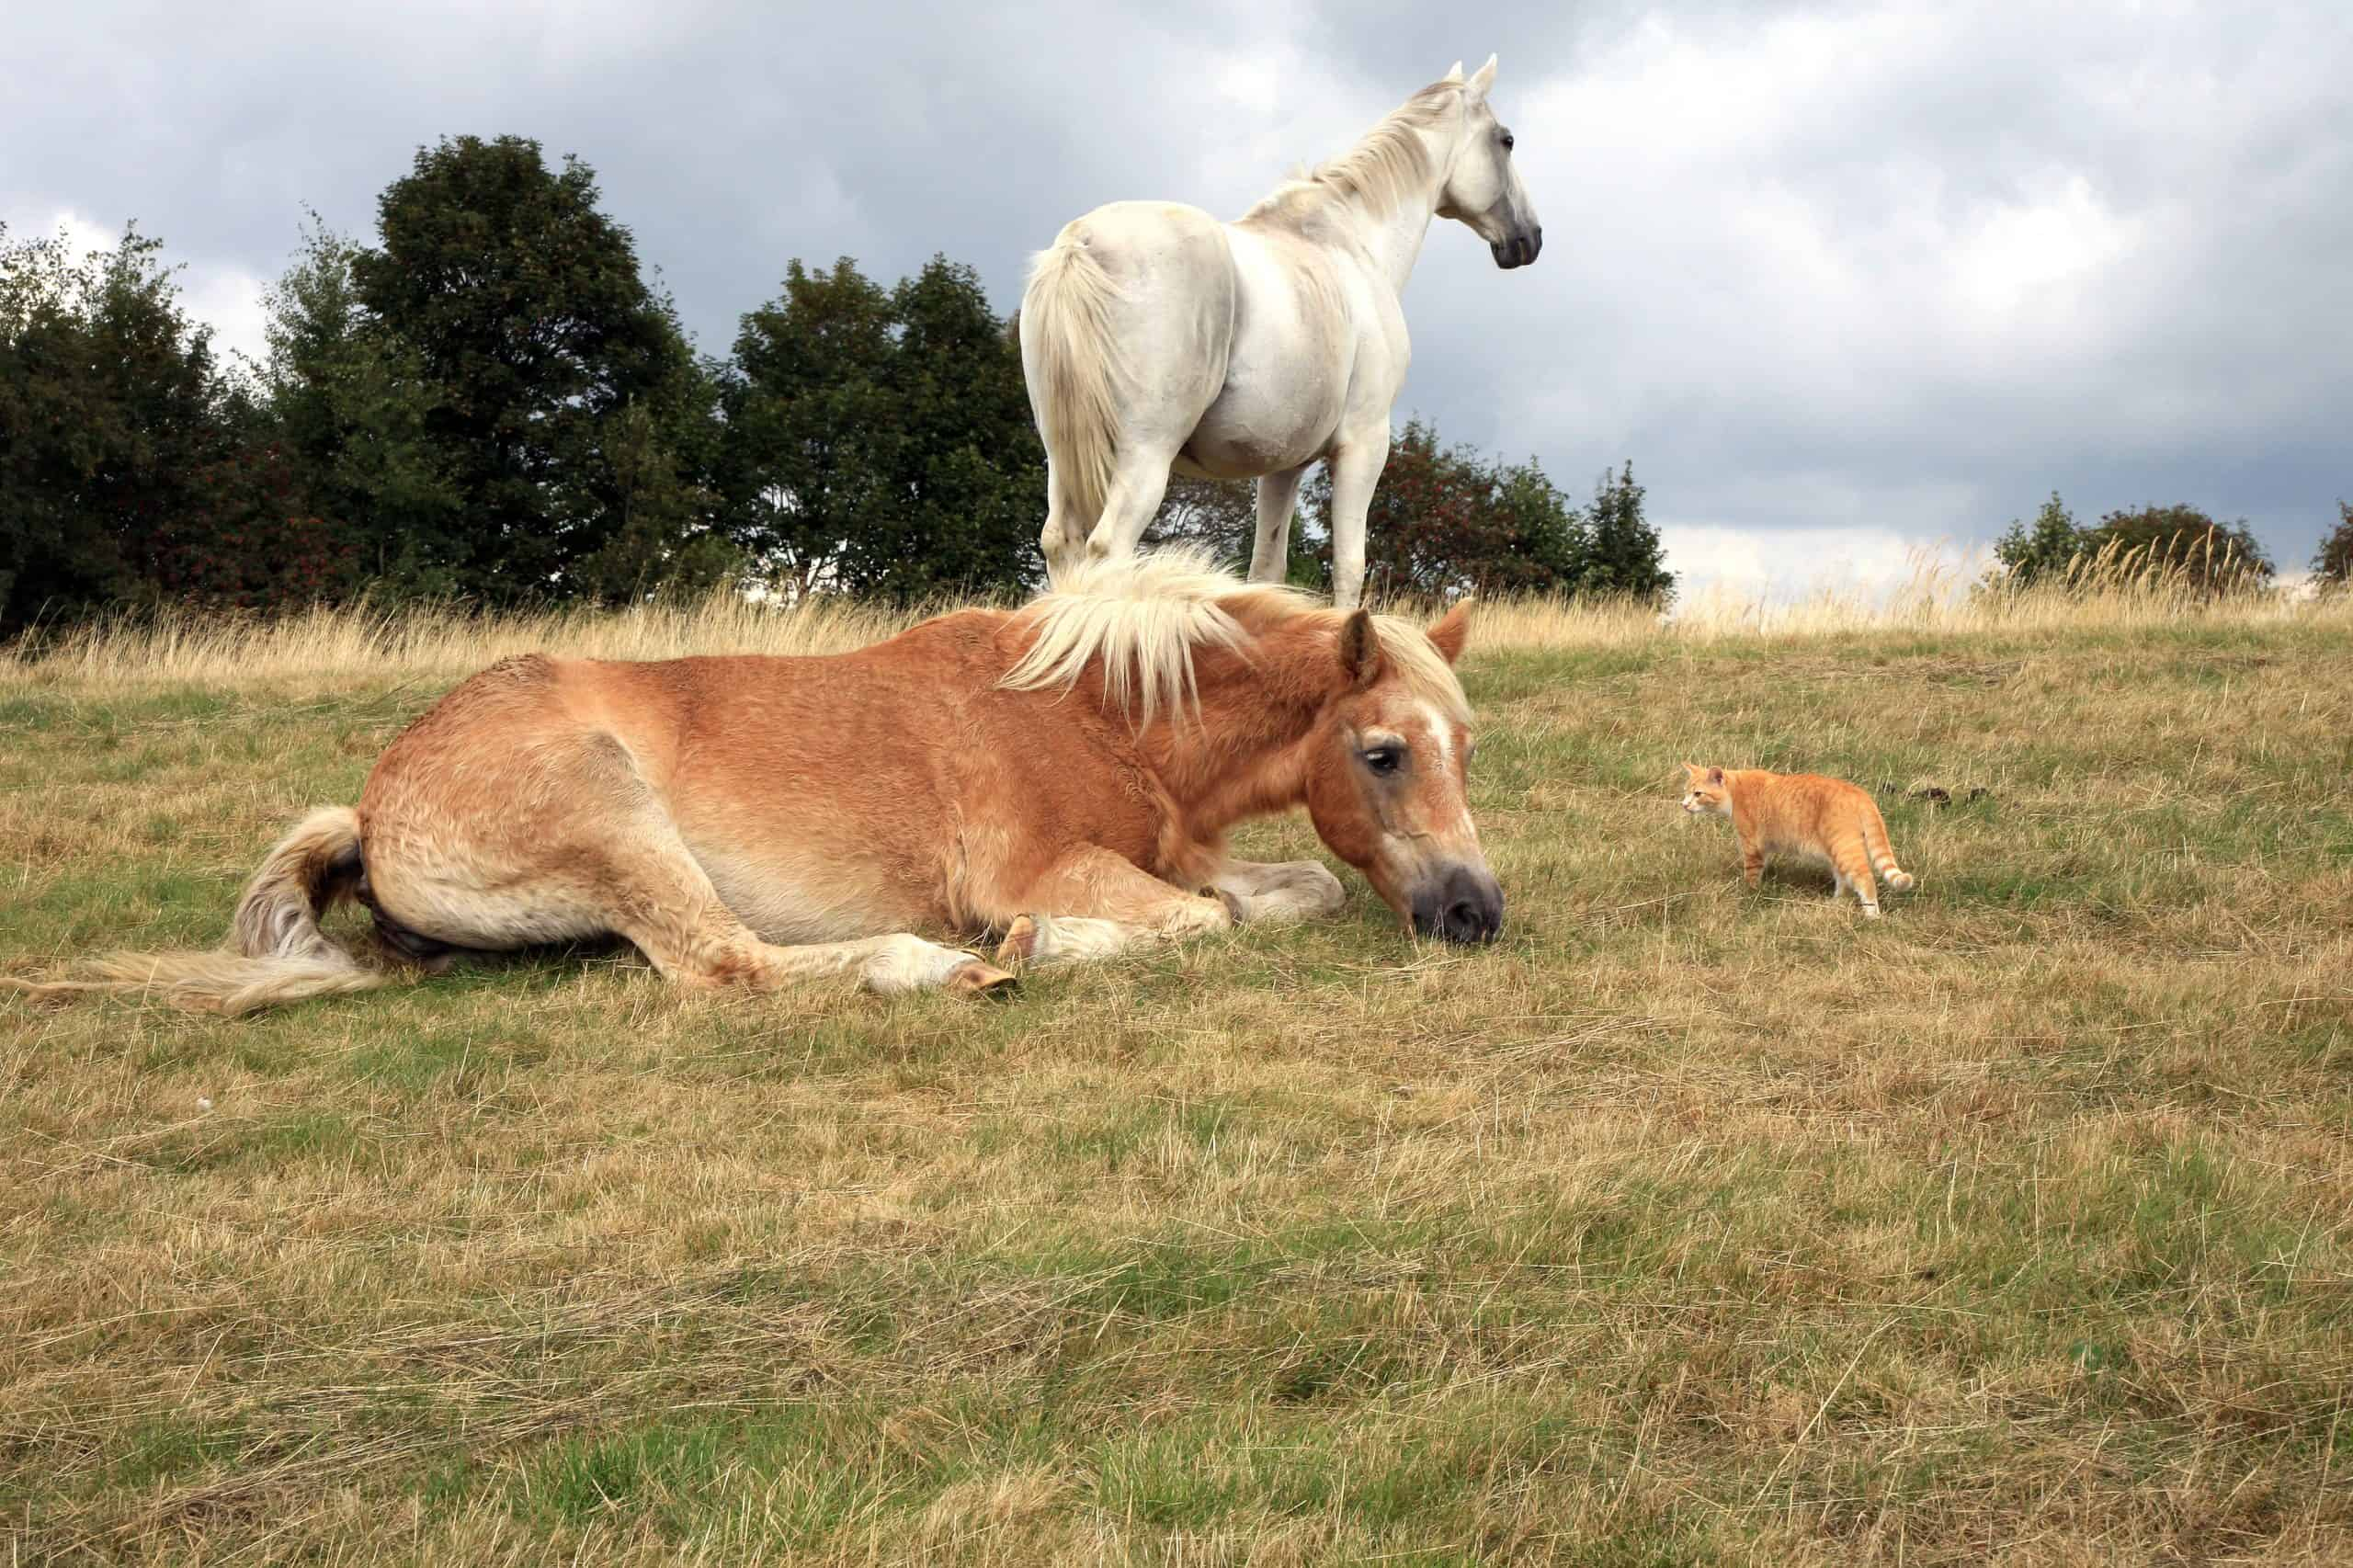 Two, white and brown horses resting on the meadow. Ginger cat creeps up to them.